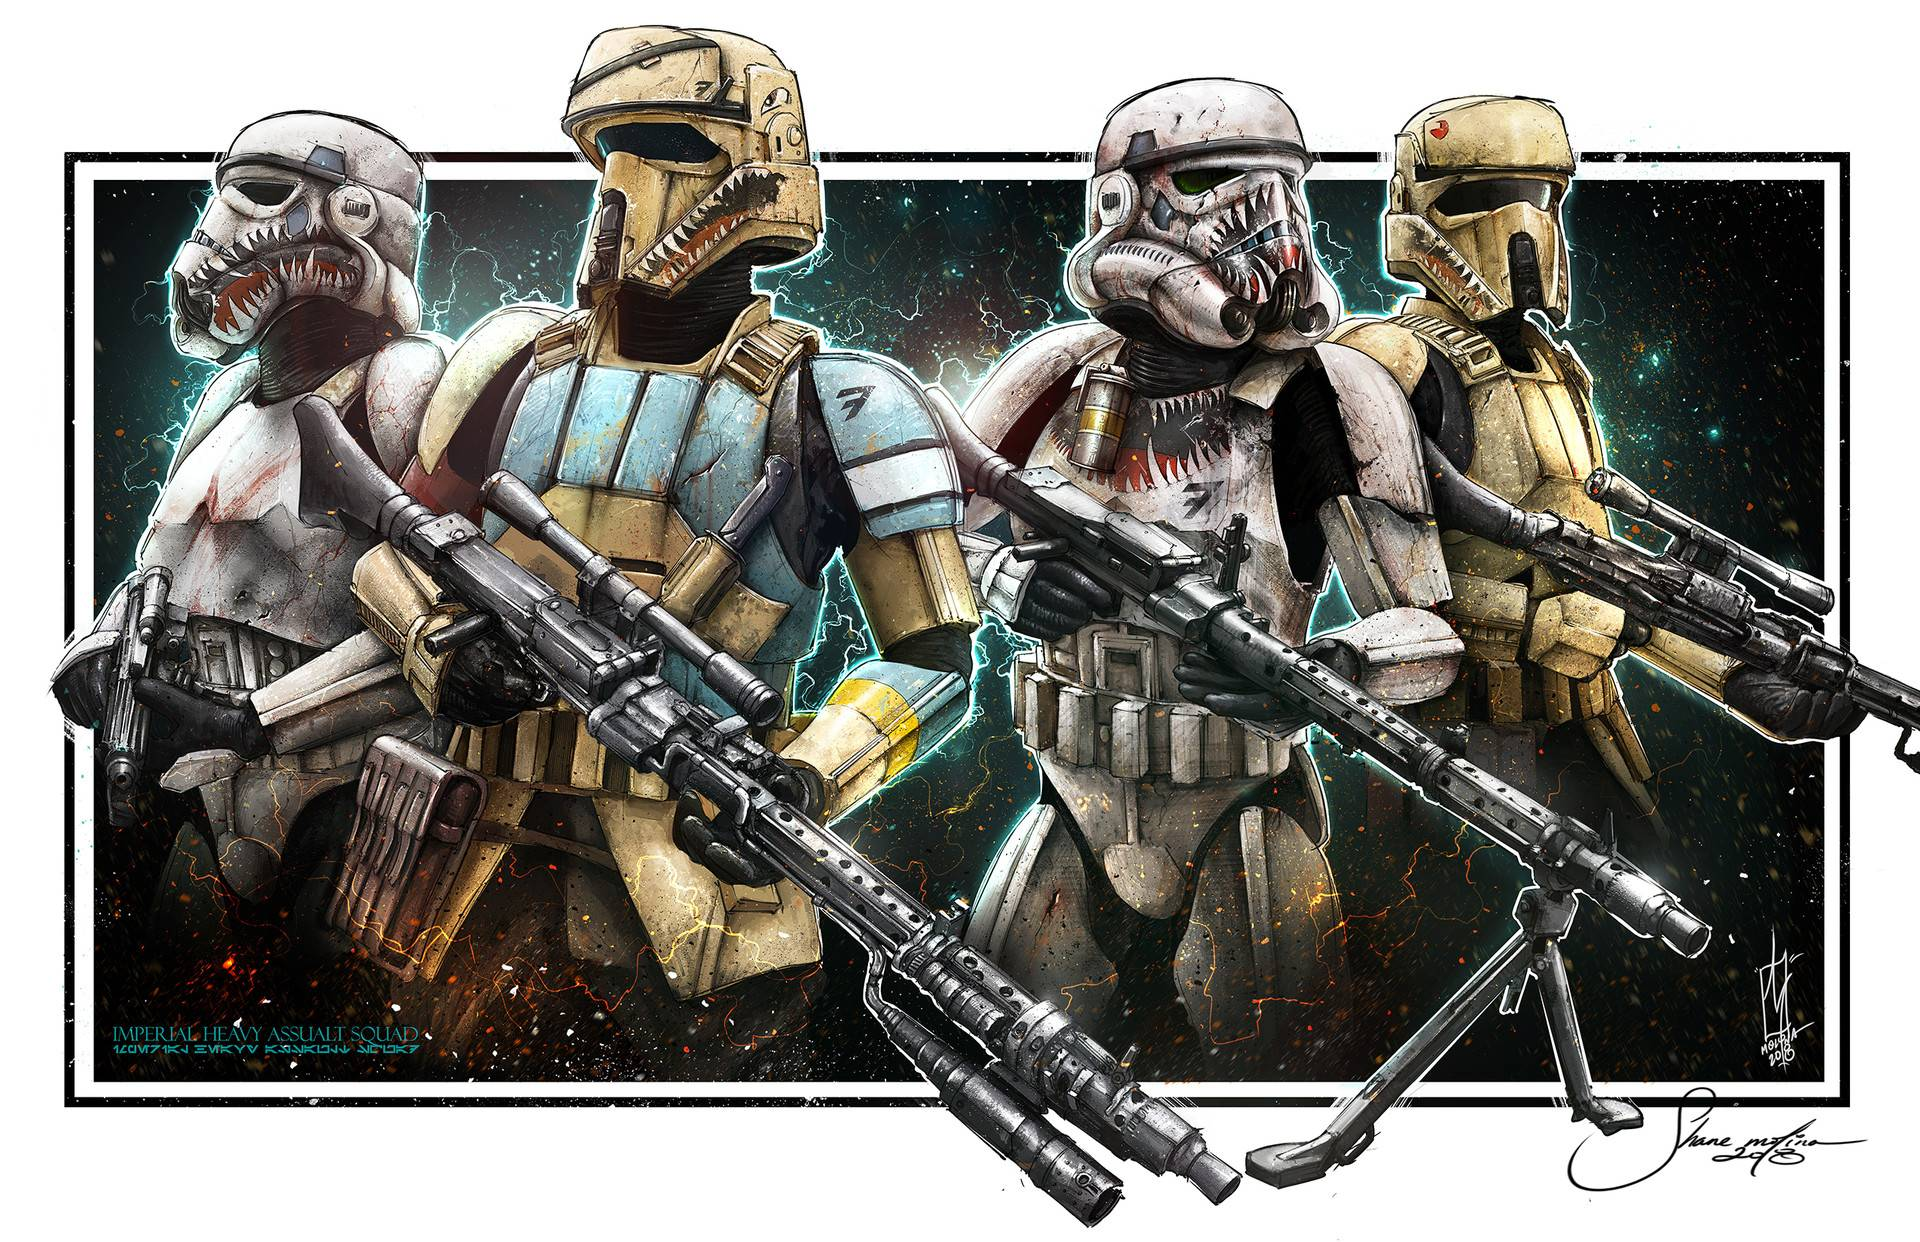 No idea who the artist is. Either way the shore troopers look sick!